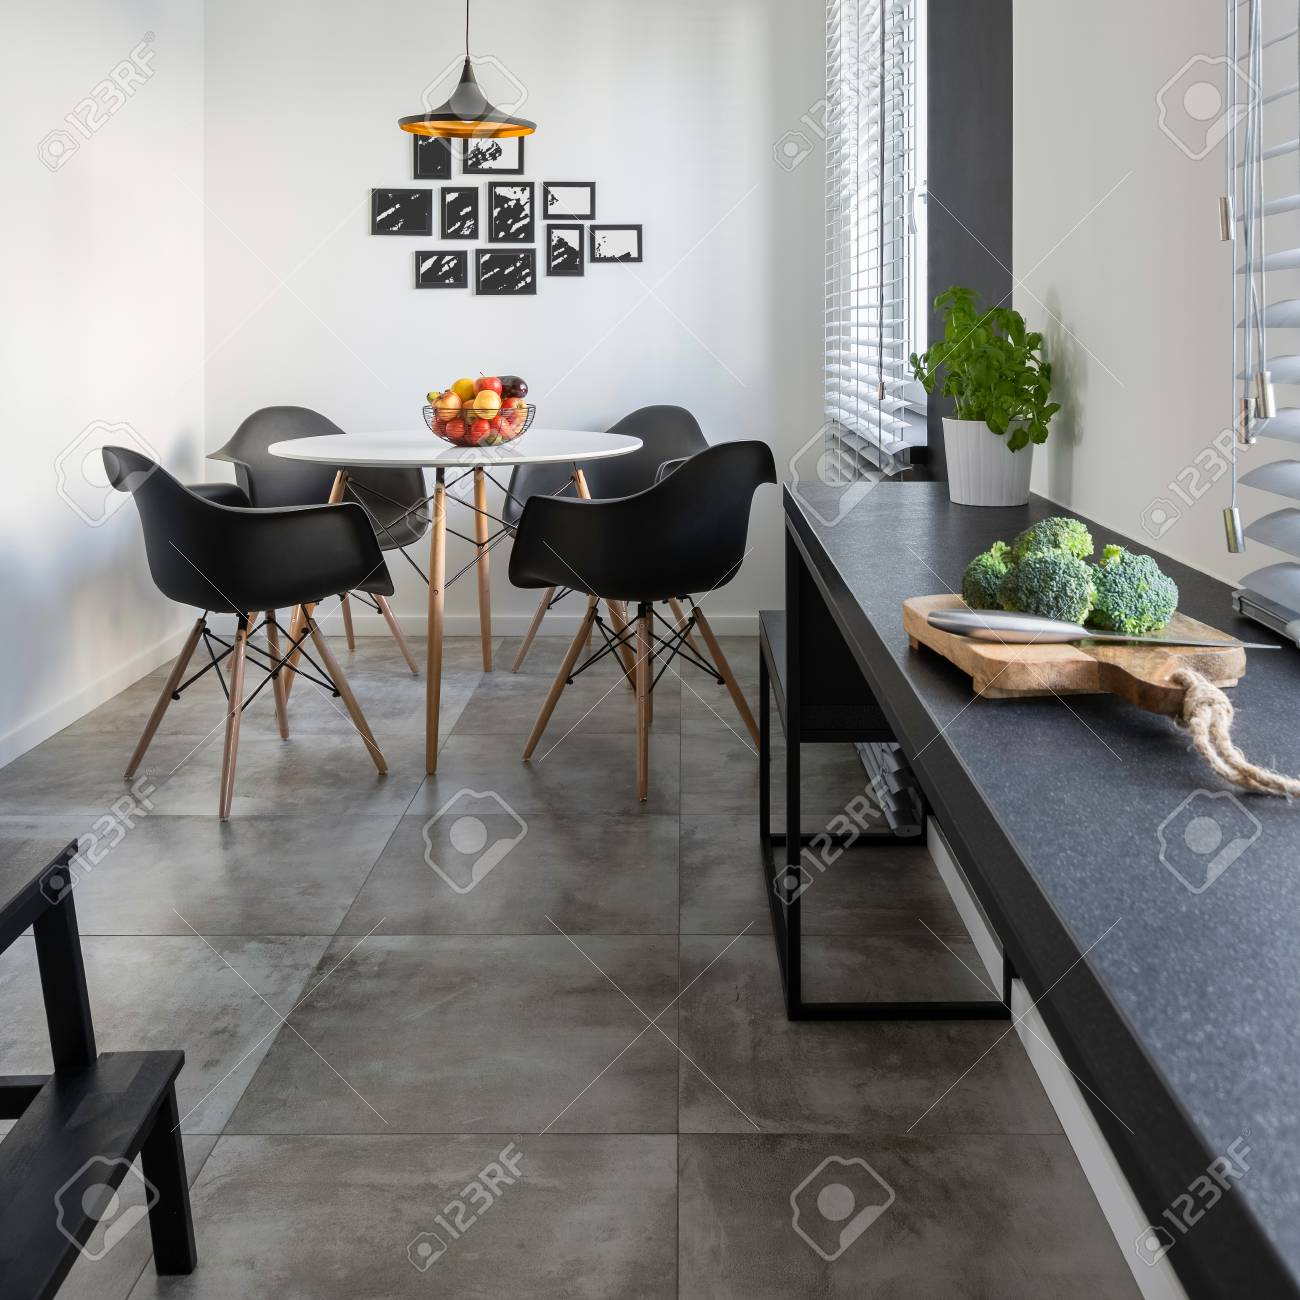 Kitchen With Long, Granite Countertop, Concrete Floor Tiles And ...